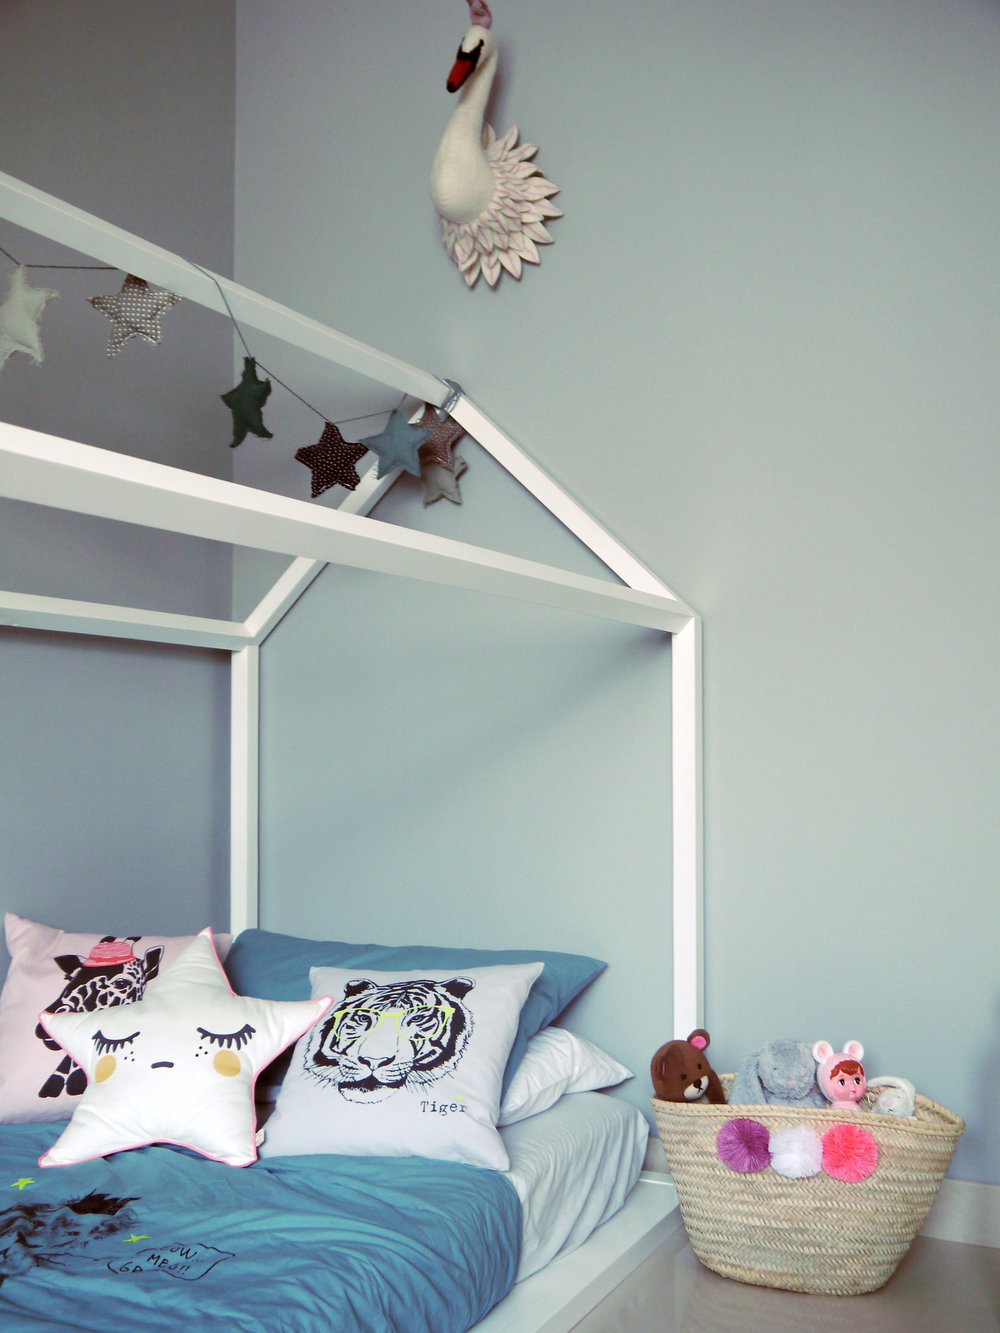 pompom basket heaven: A lovely addition to Stella's bedroom